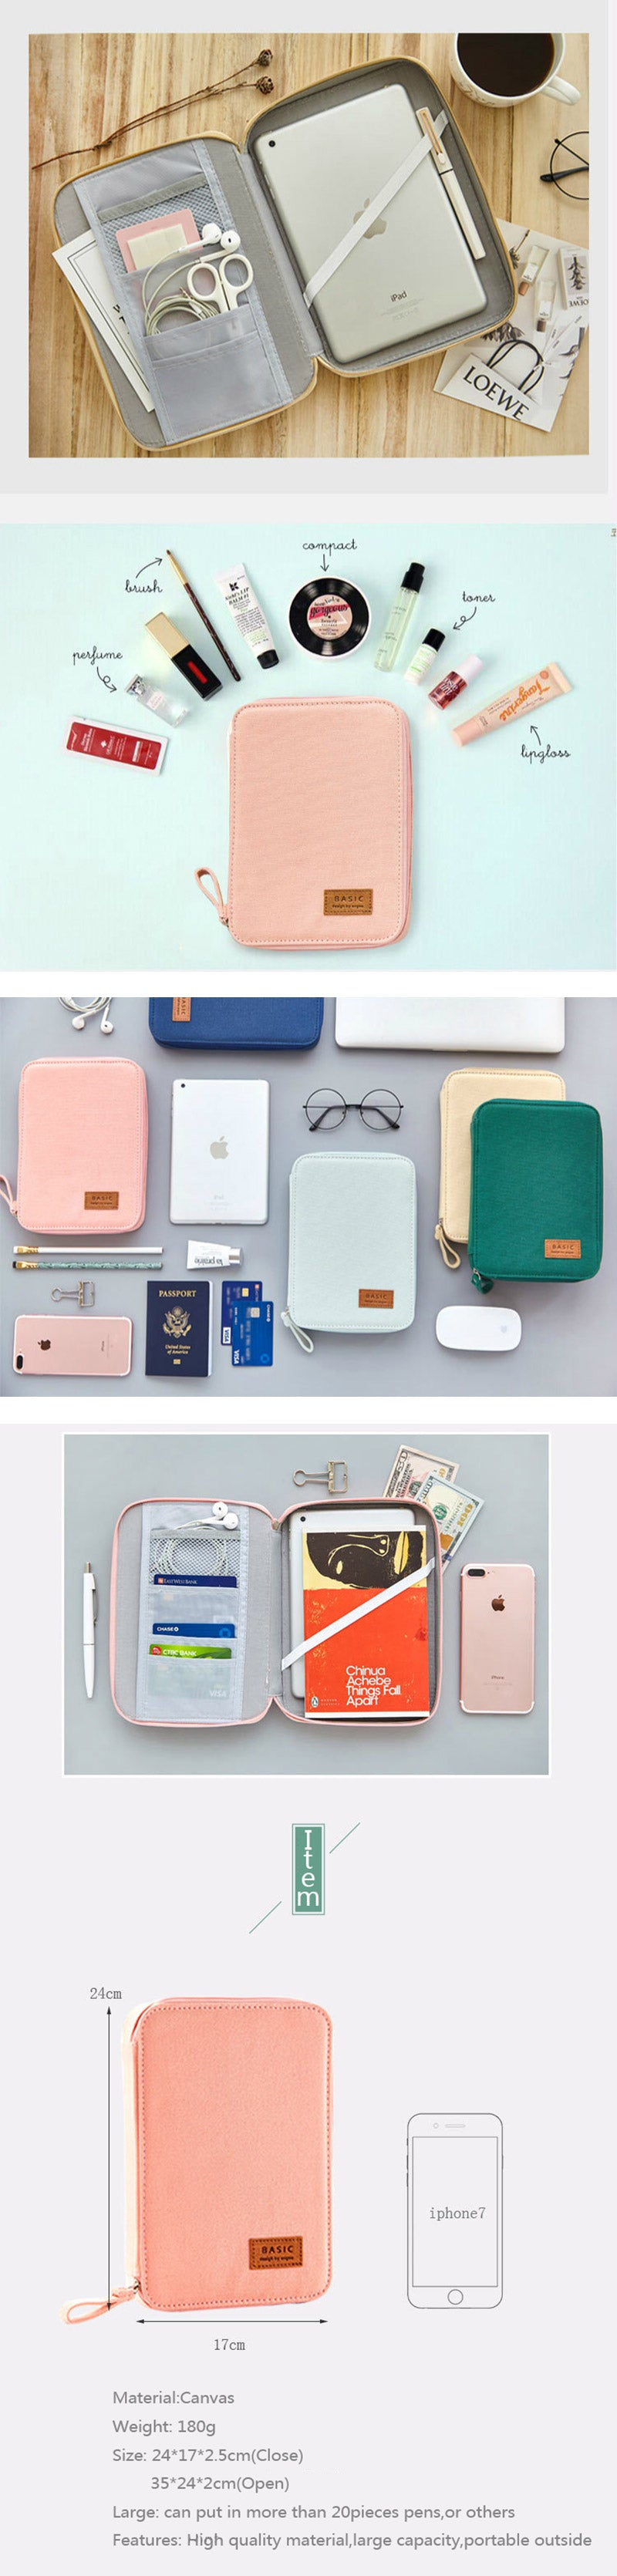 Canvas Zipper Large Stationery Organizer - Detail